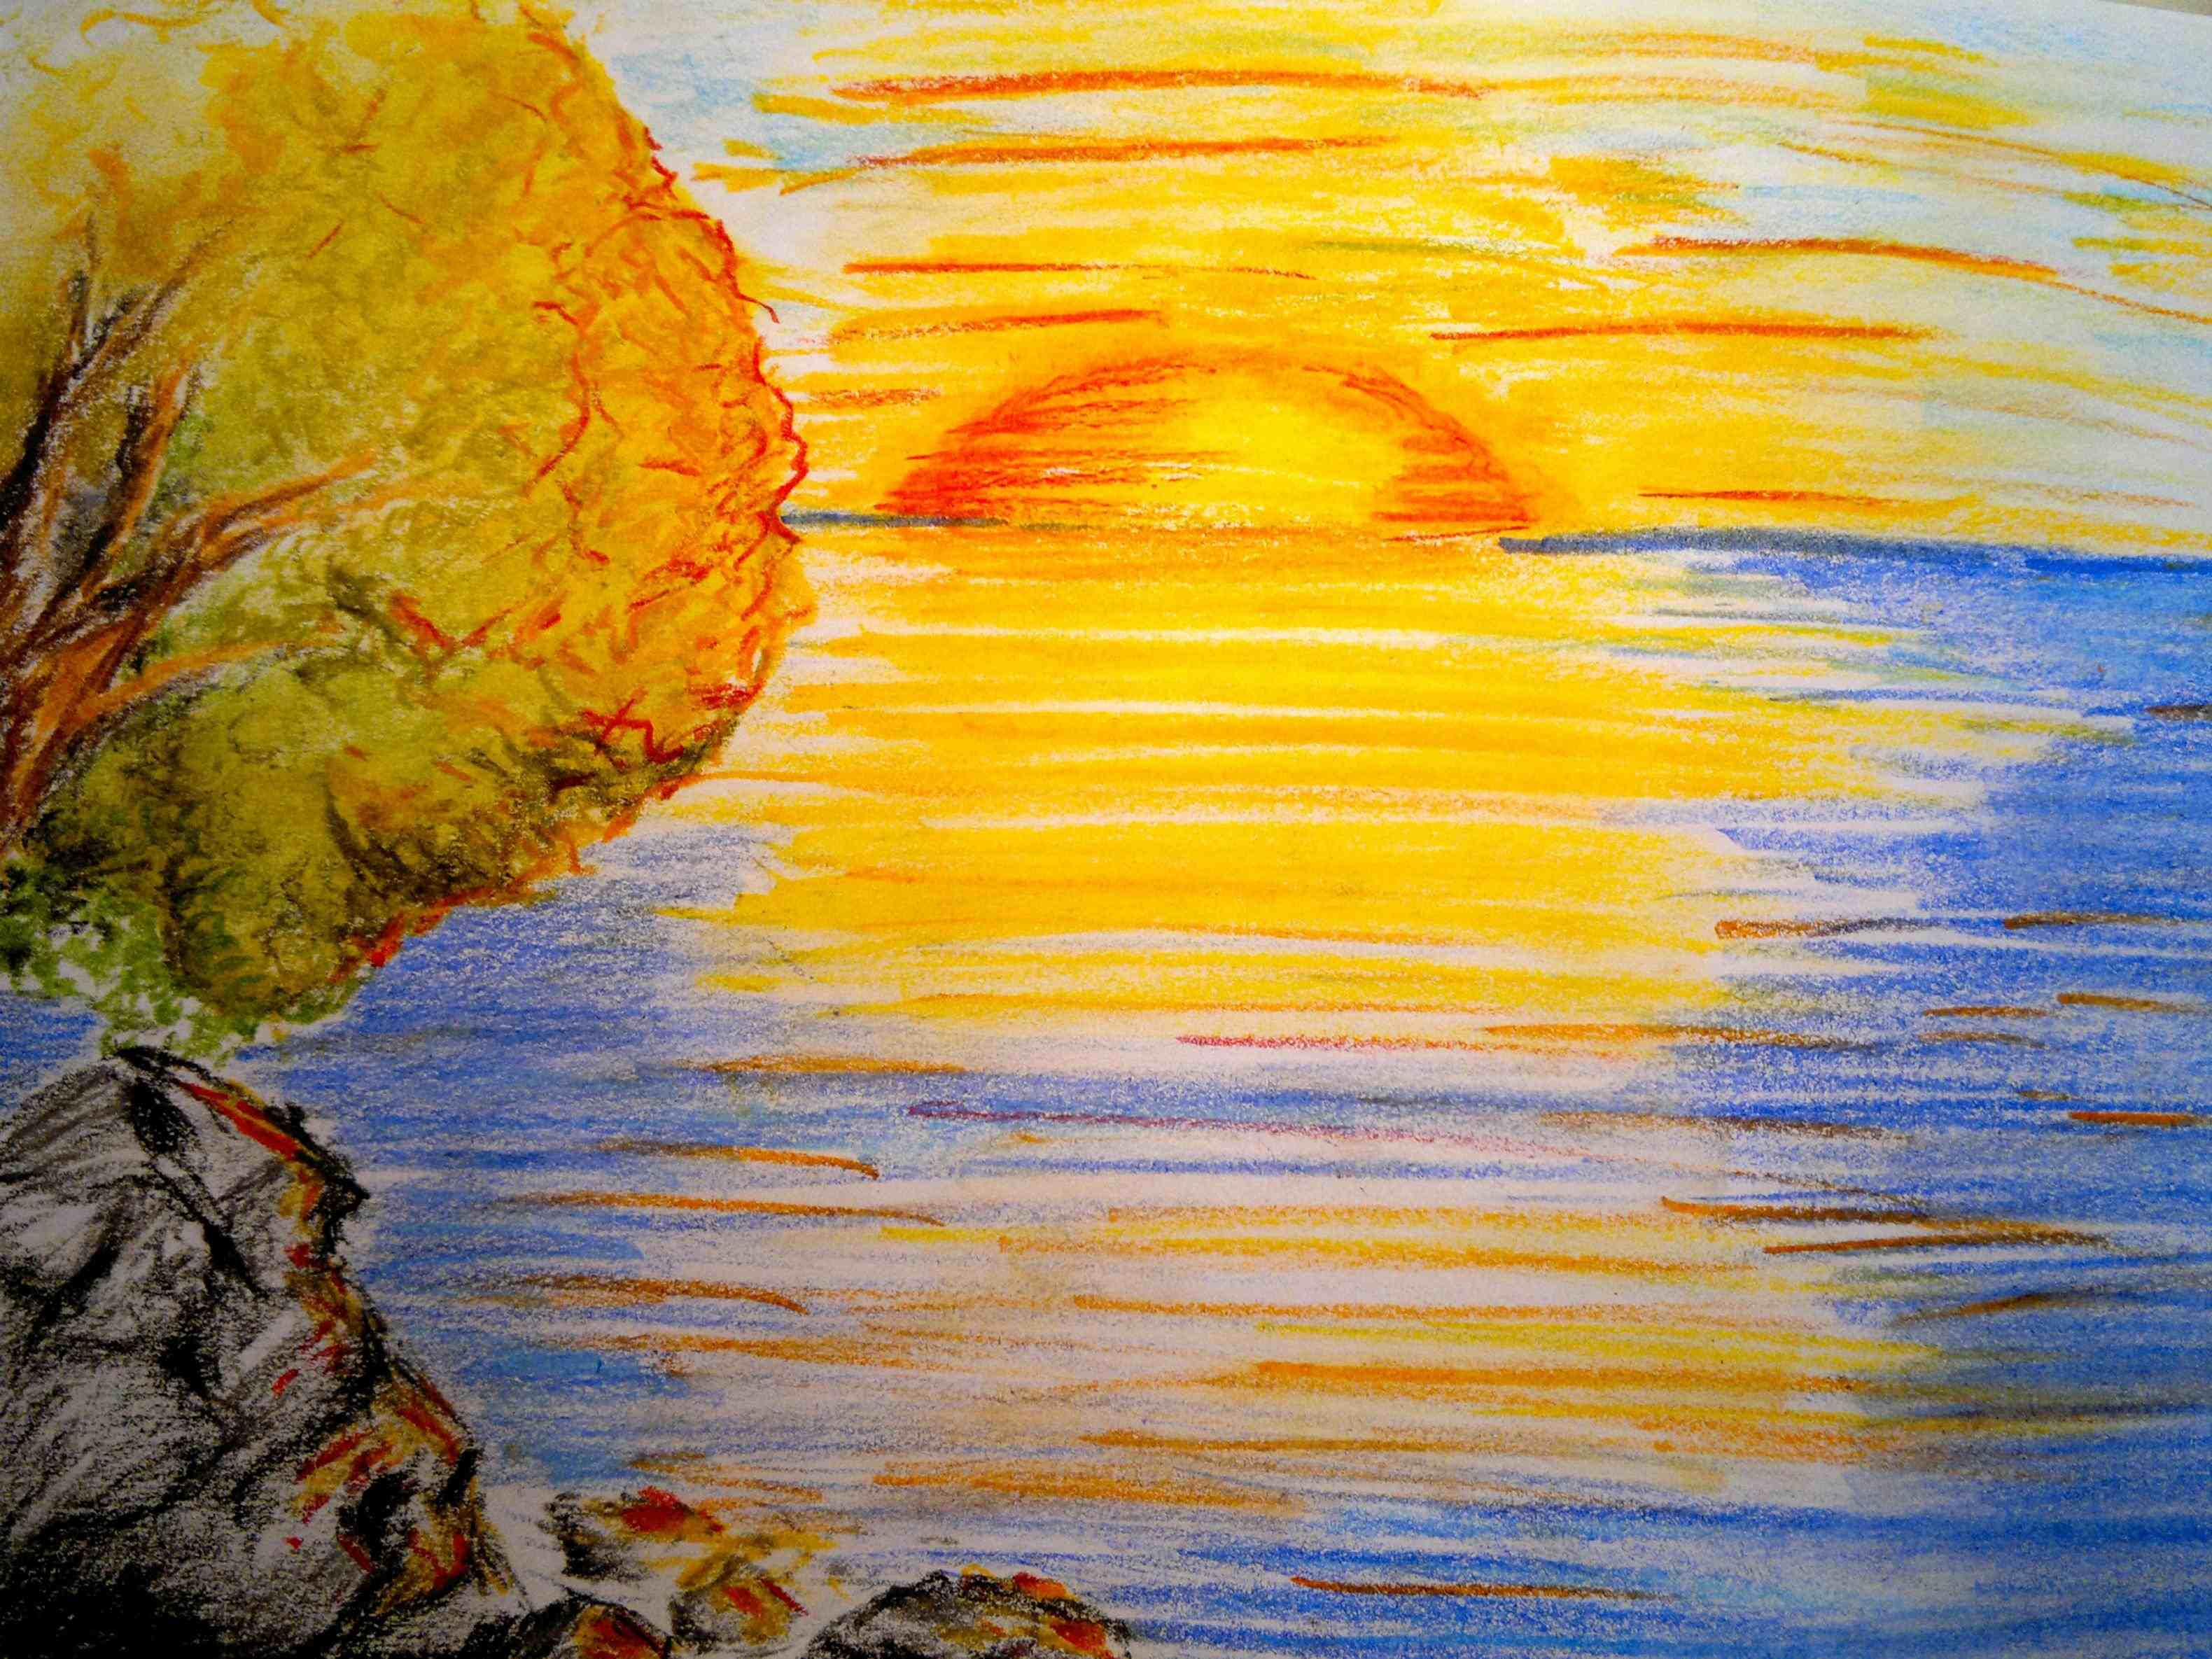 Beach Sunset Drawing at GetDrawings.com | Free for ...